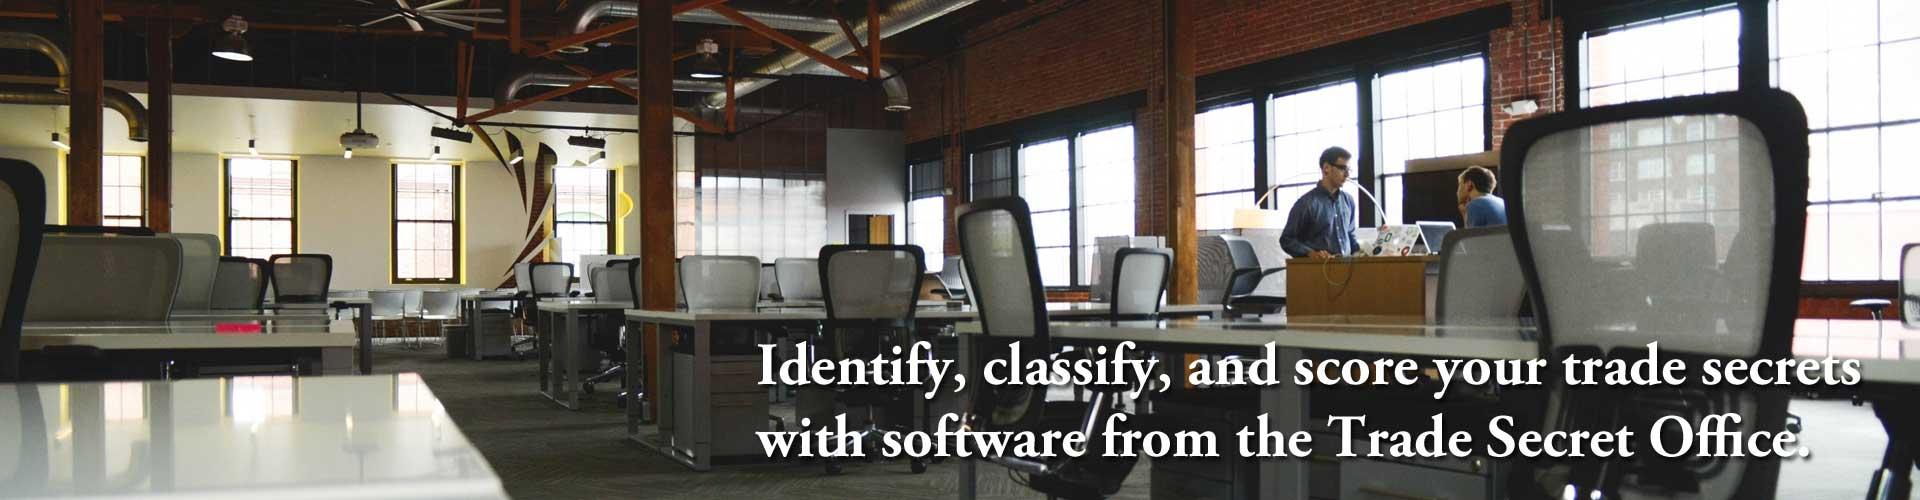 Identify, classify, and score your trade secrets with software from the Trade Secret Office.